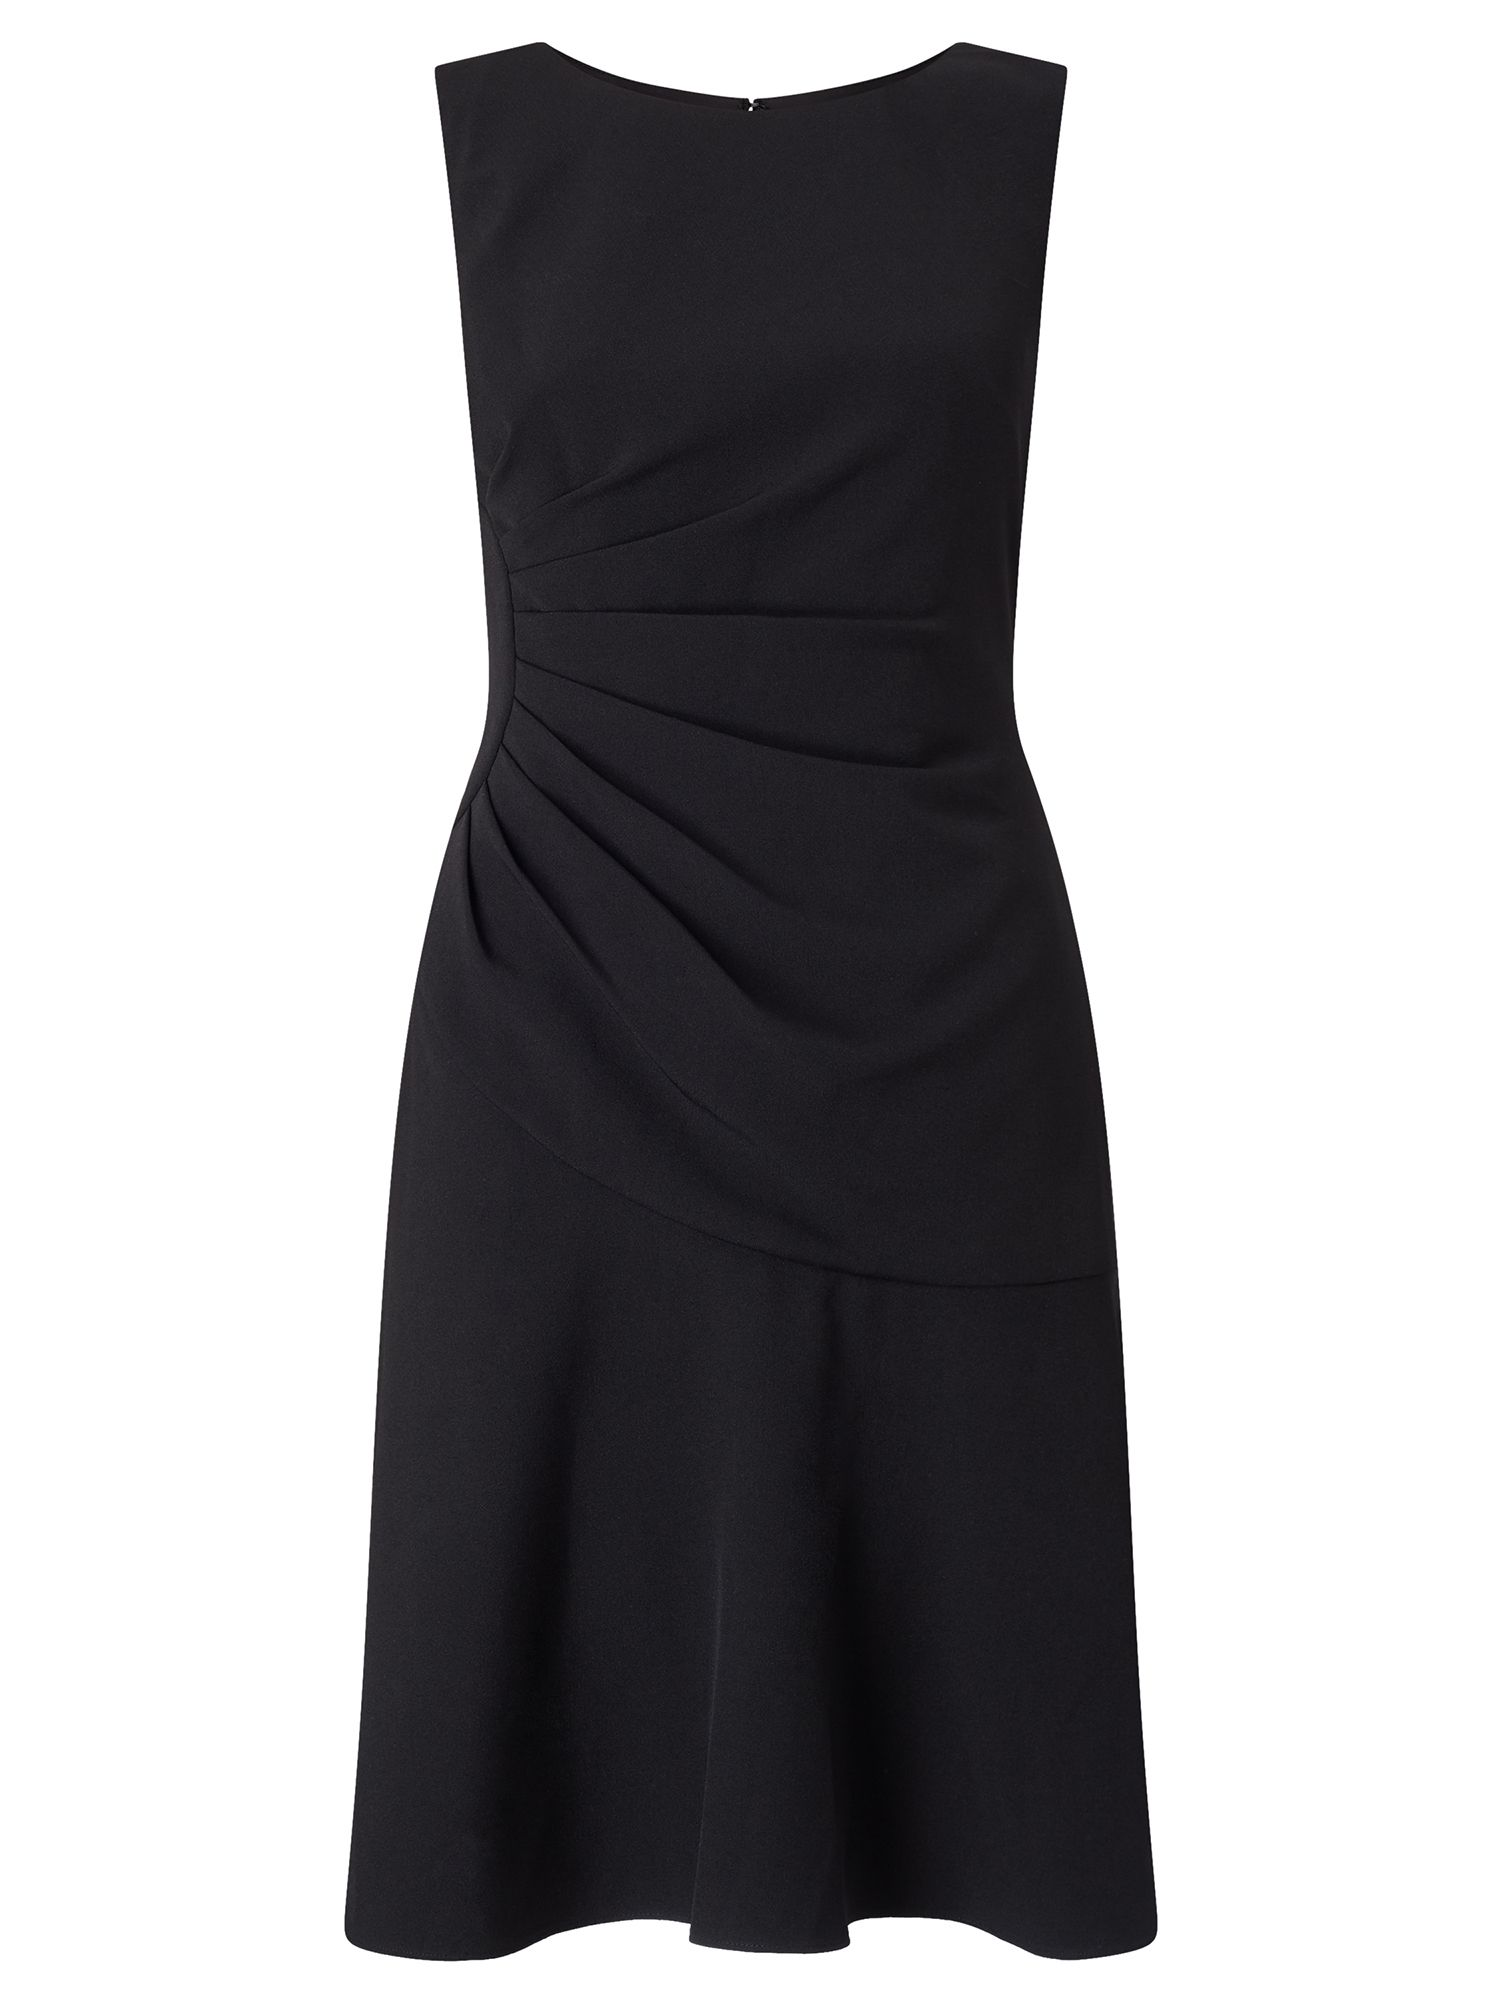 Adrianna Papell Drop waist tailored dress, Black